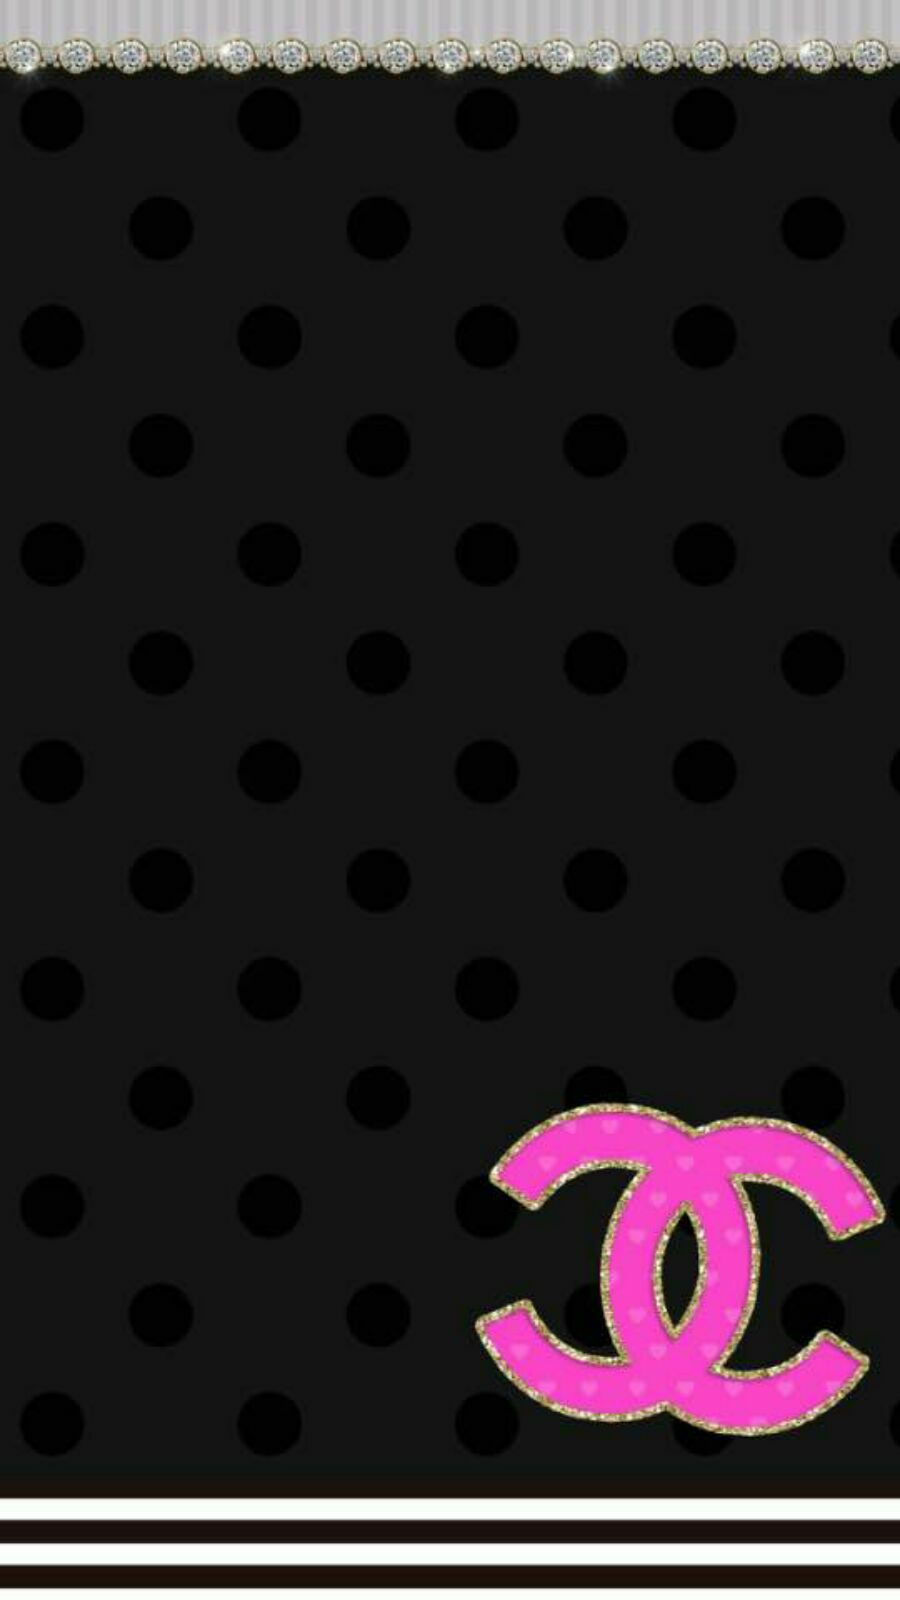 Download Wallpaper Hello Kitty Black - e4c6b544ab683bce5f5ca0116ff66580  You Should Have_128481.jpg